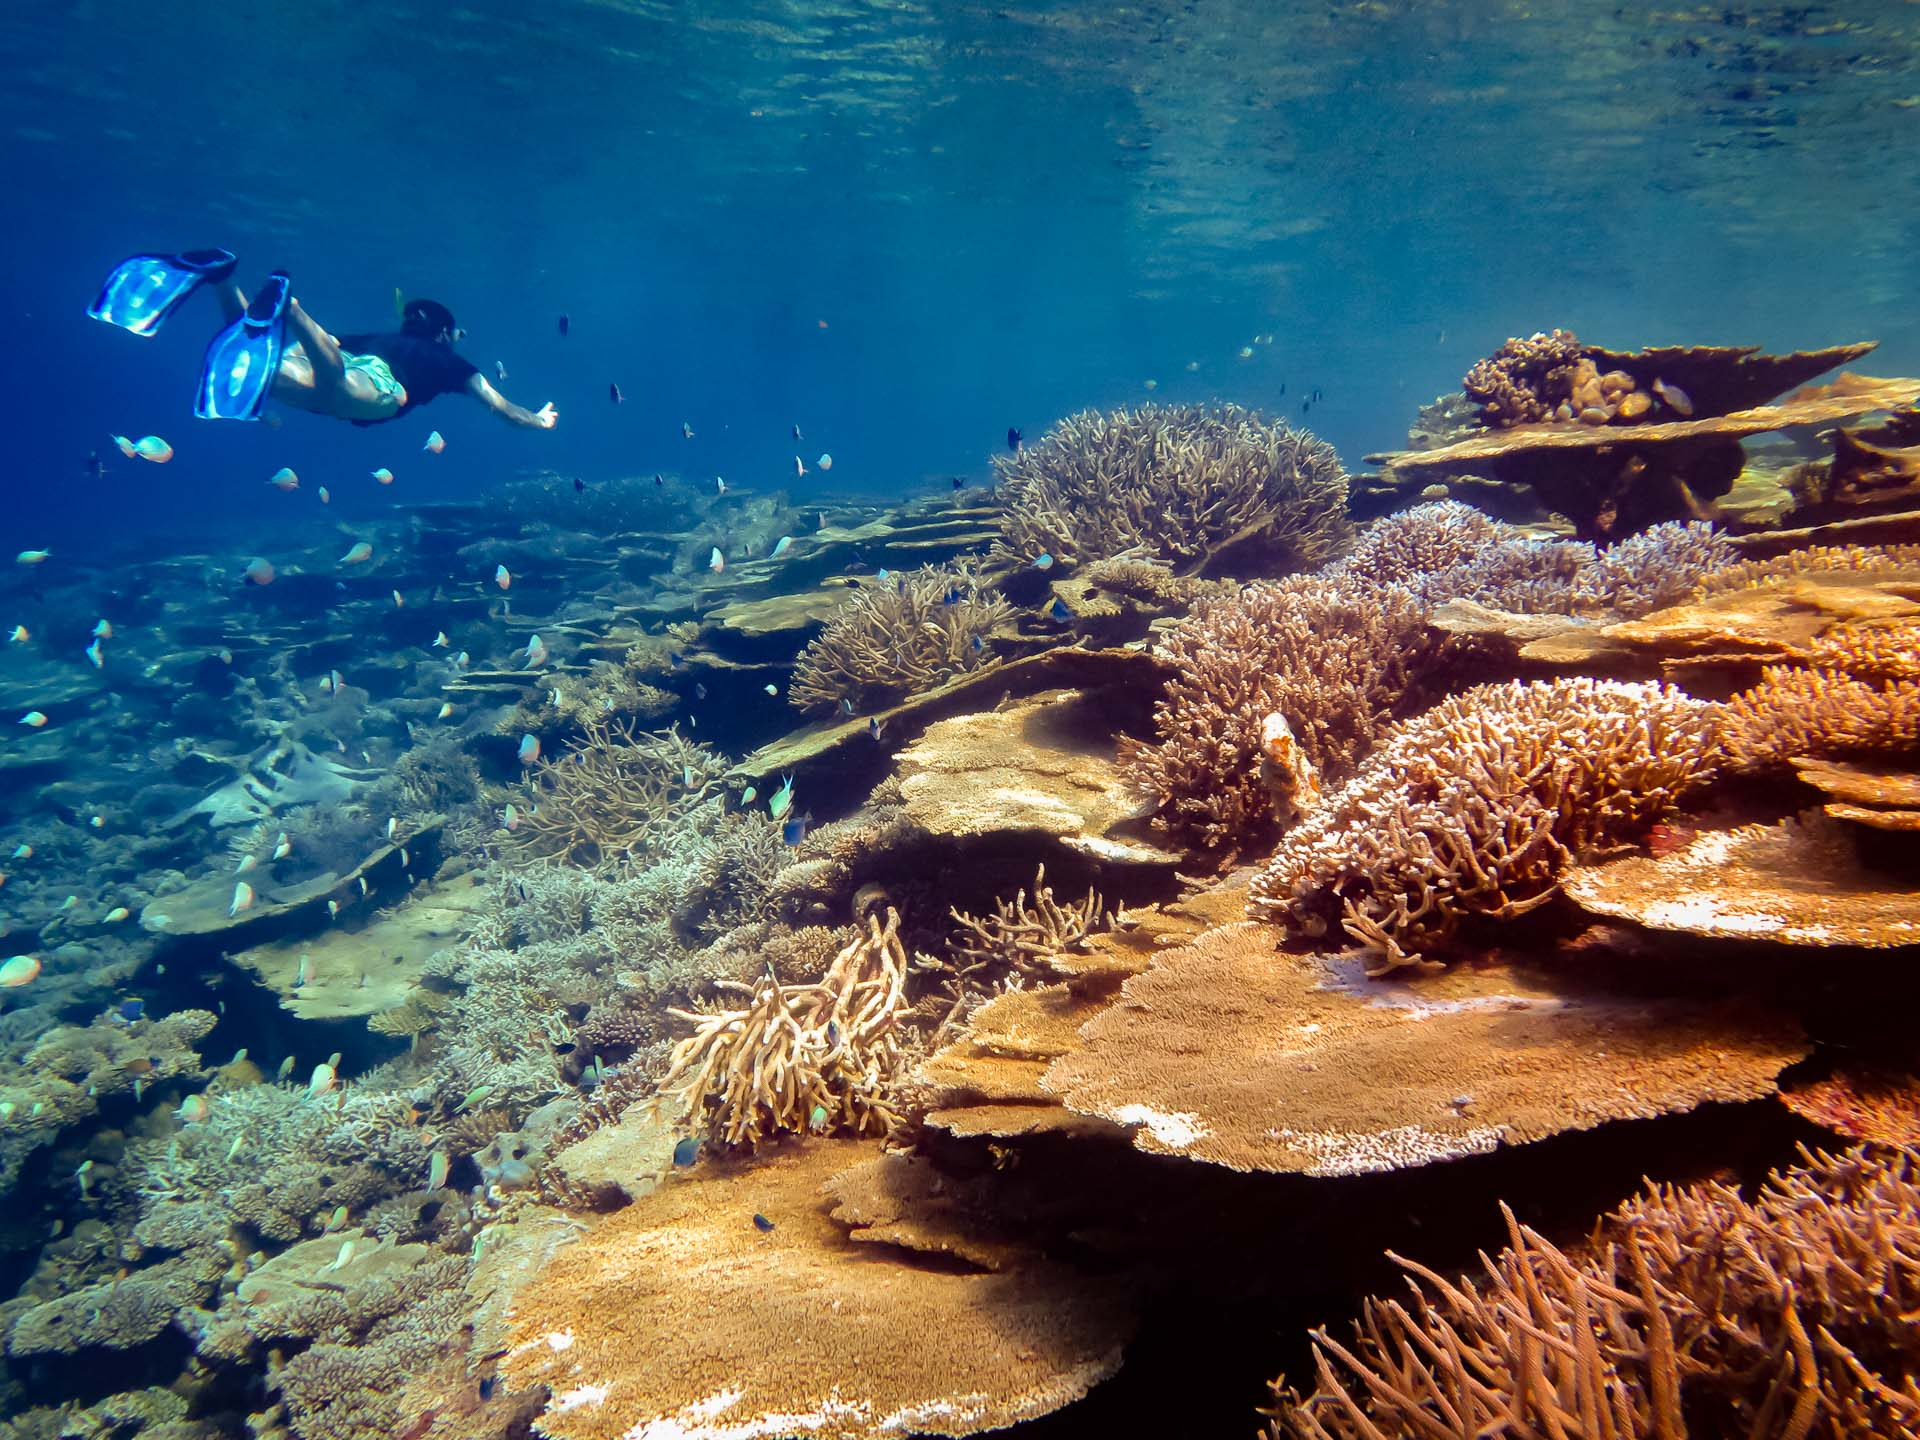 Excursions - beautiful corals and marine life (Marine Savers Maldives)